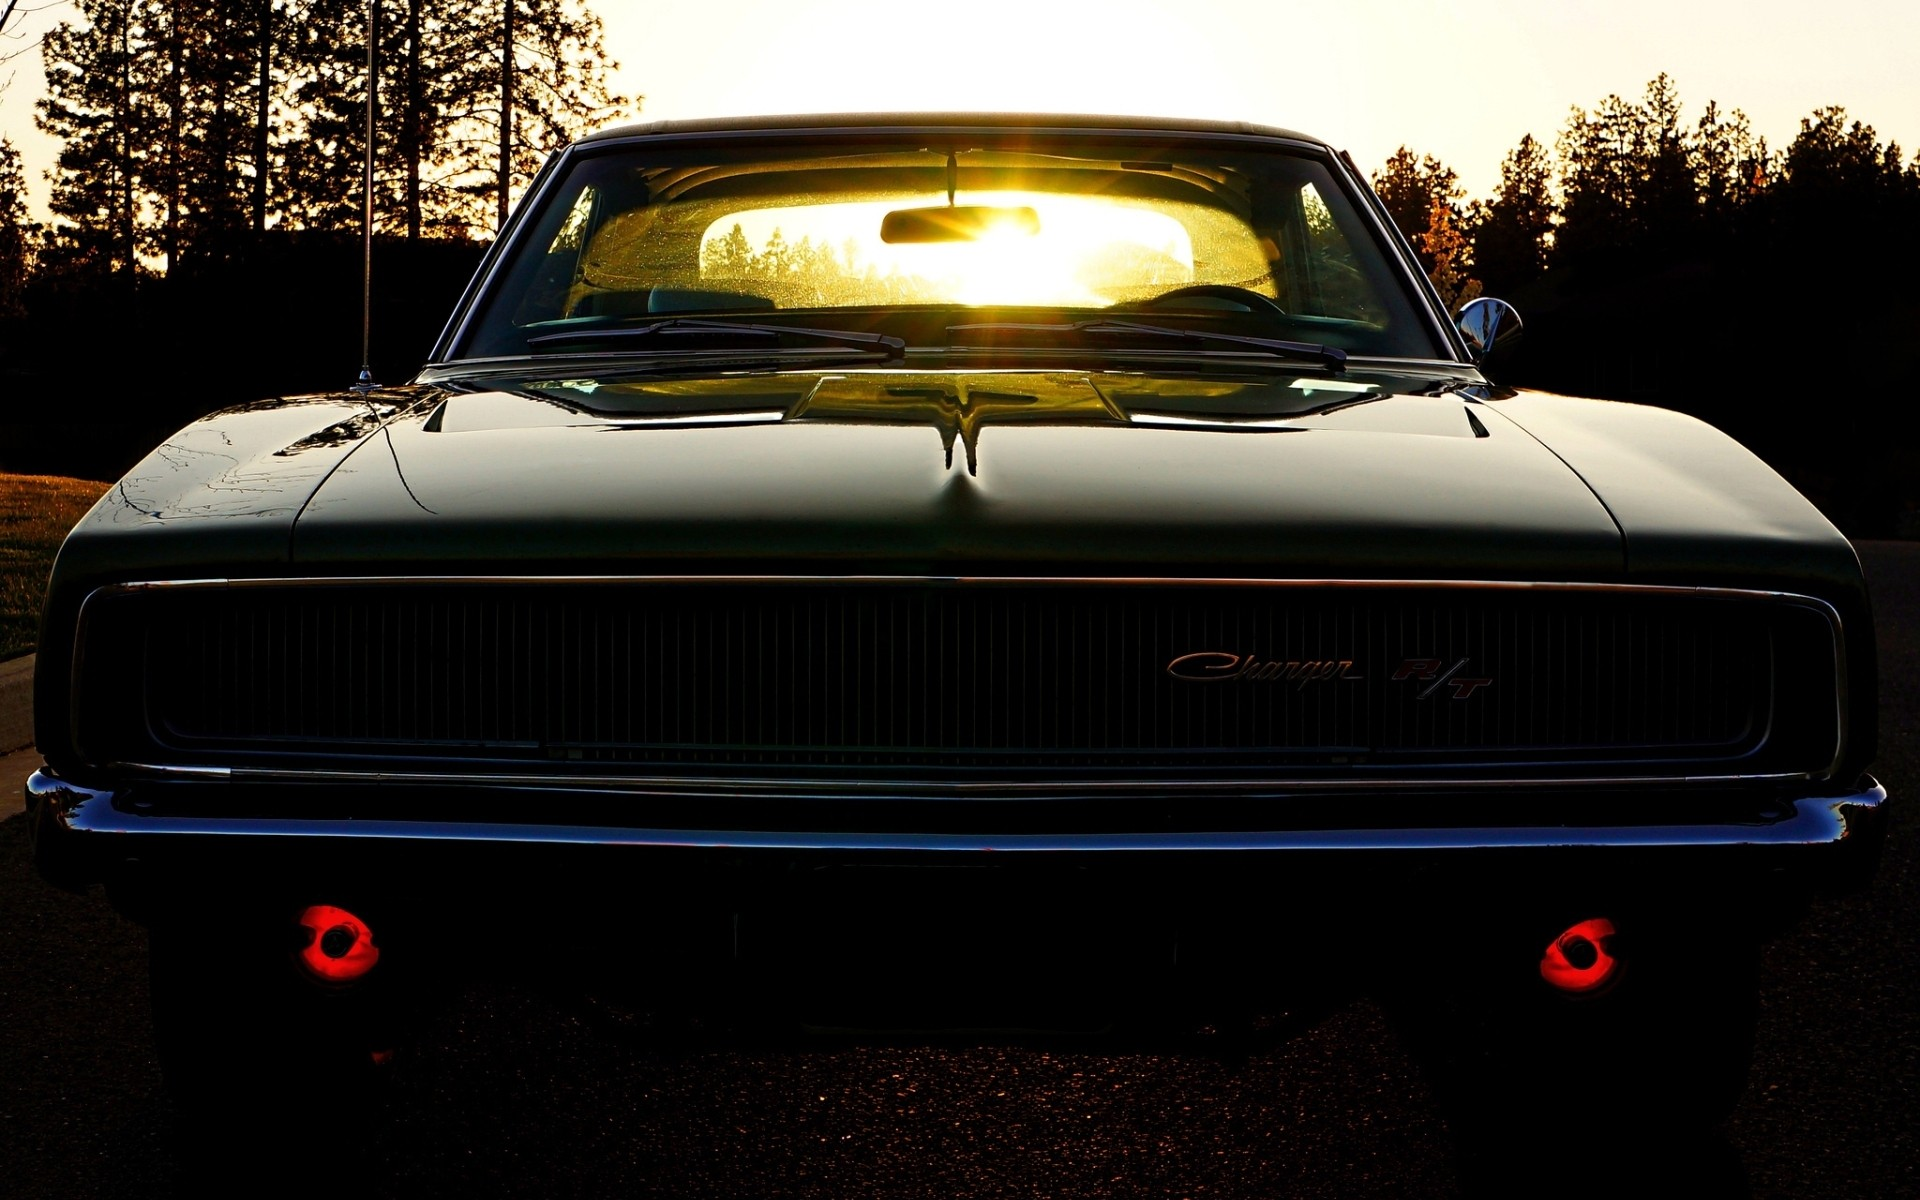 Old School Dodge Charger Hintergrundbilder | Old School ...